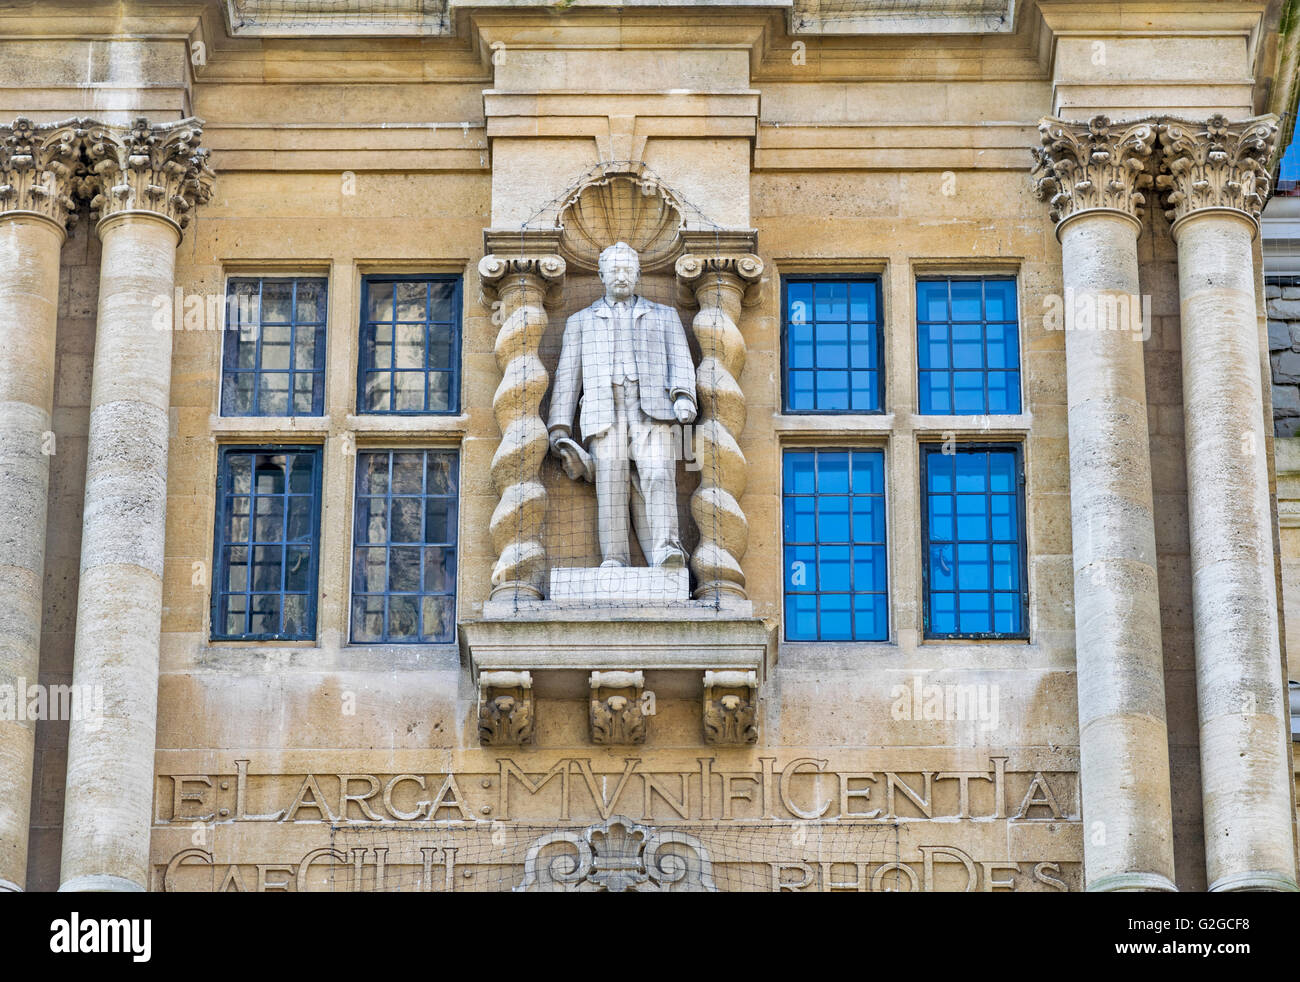 OXFORD CITY CECIL RHODES THE STATUE LOOKS DOWN FROM THE FRONT OF ORIEL COLLEGE OXFORD SEEN FROM THE HIGH STREET - Stock Image